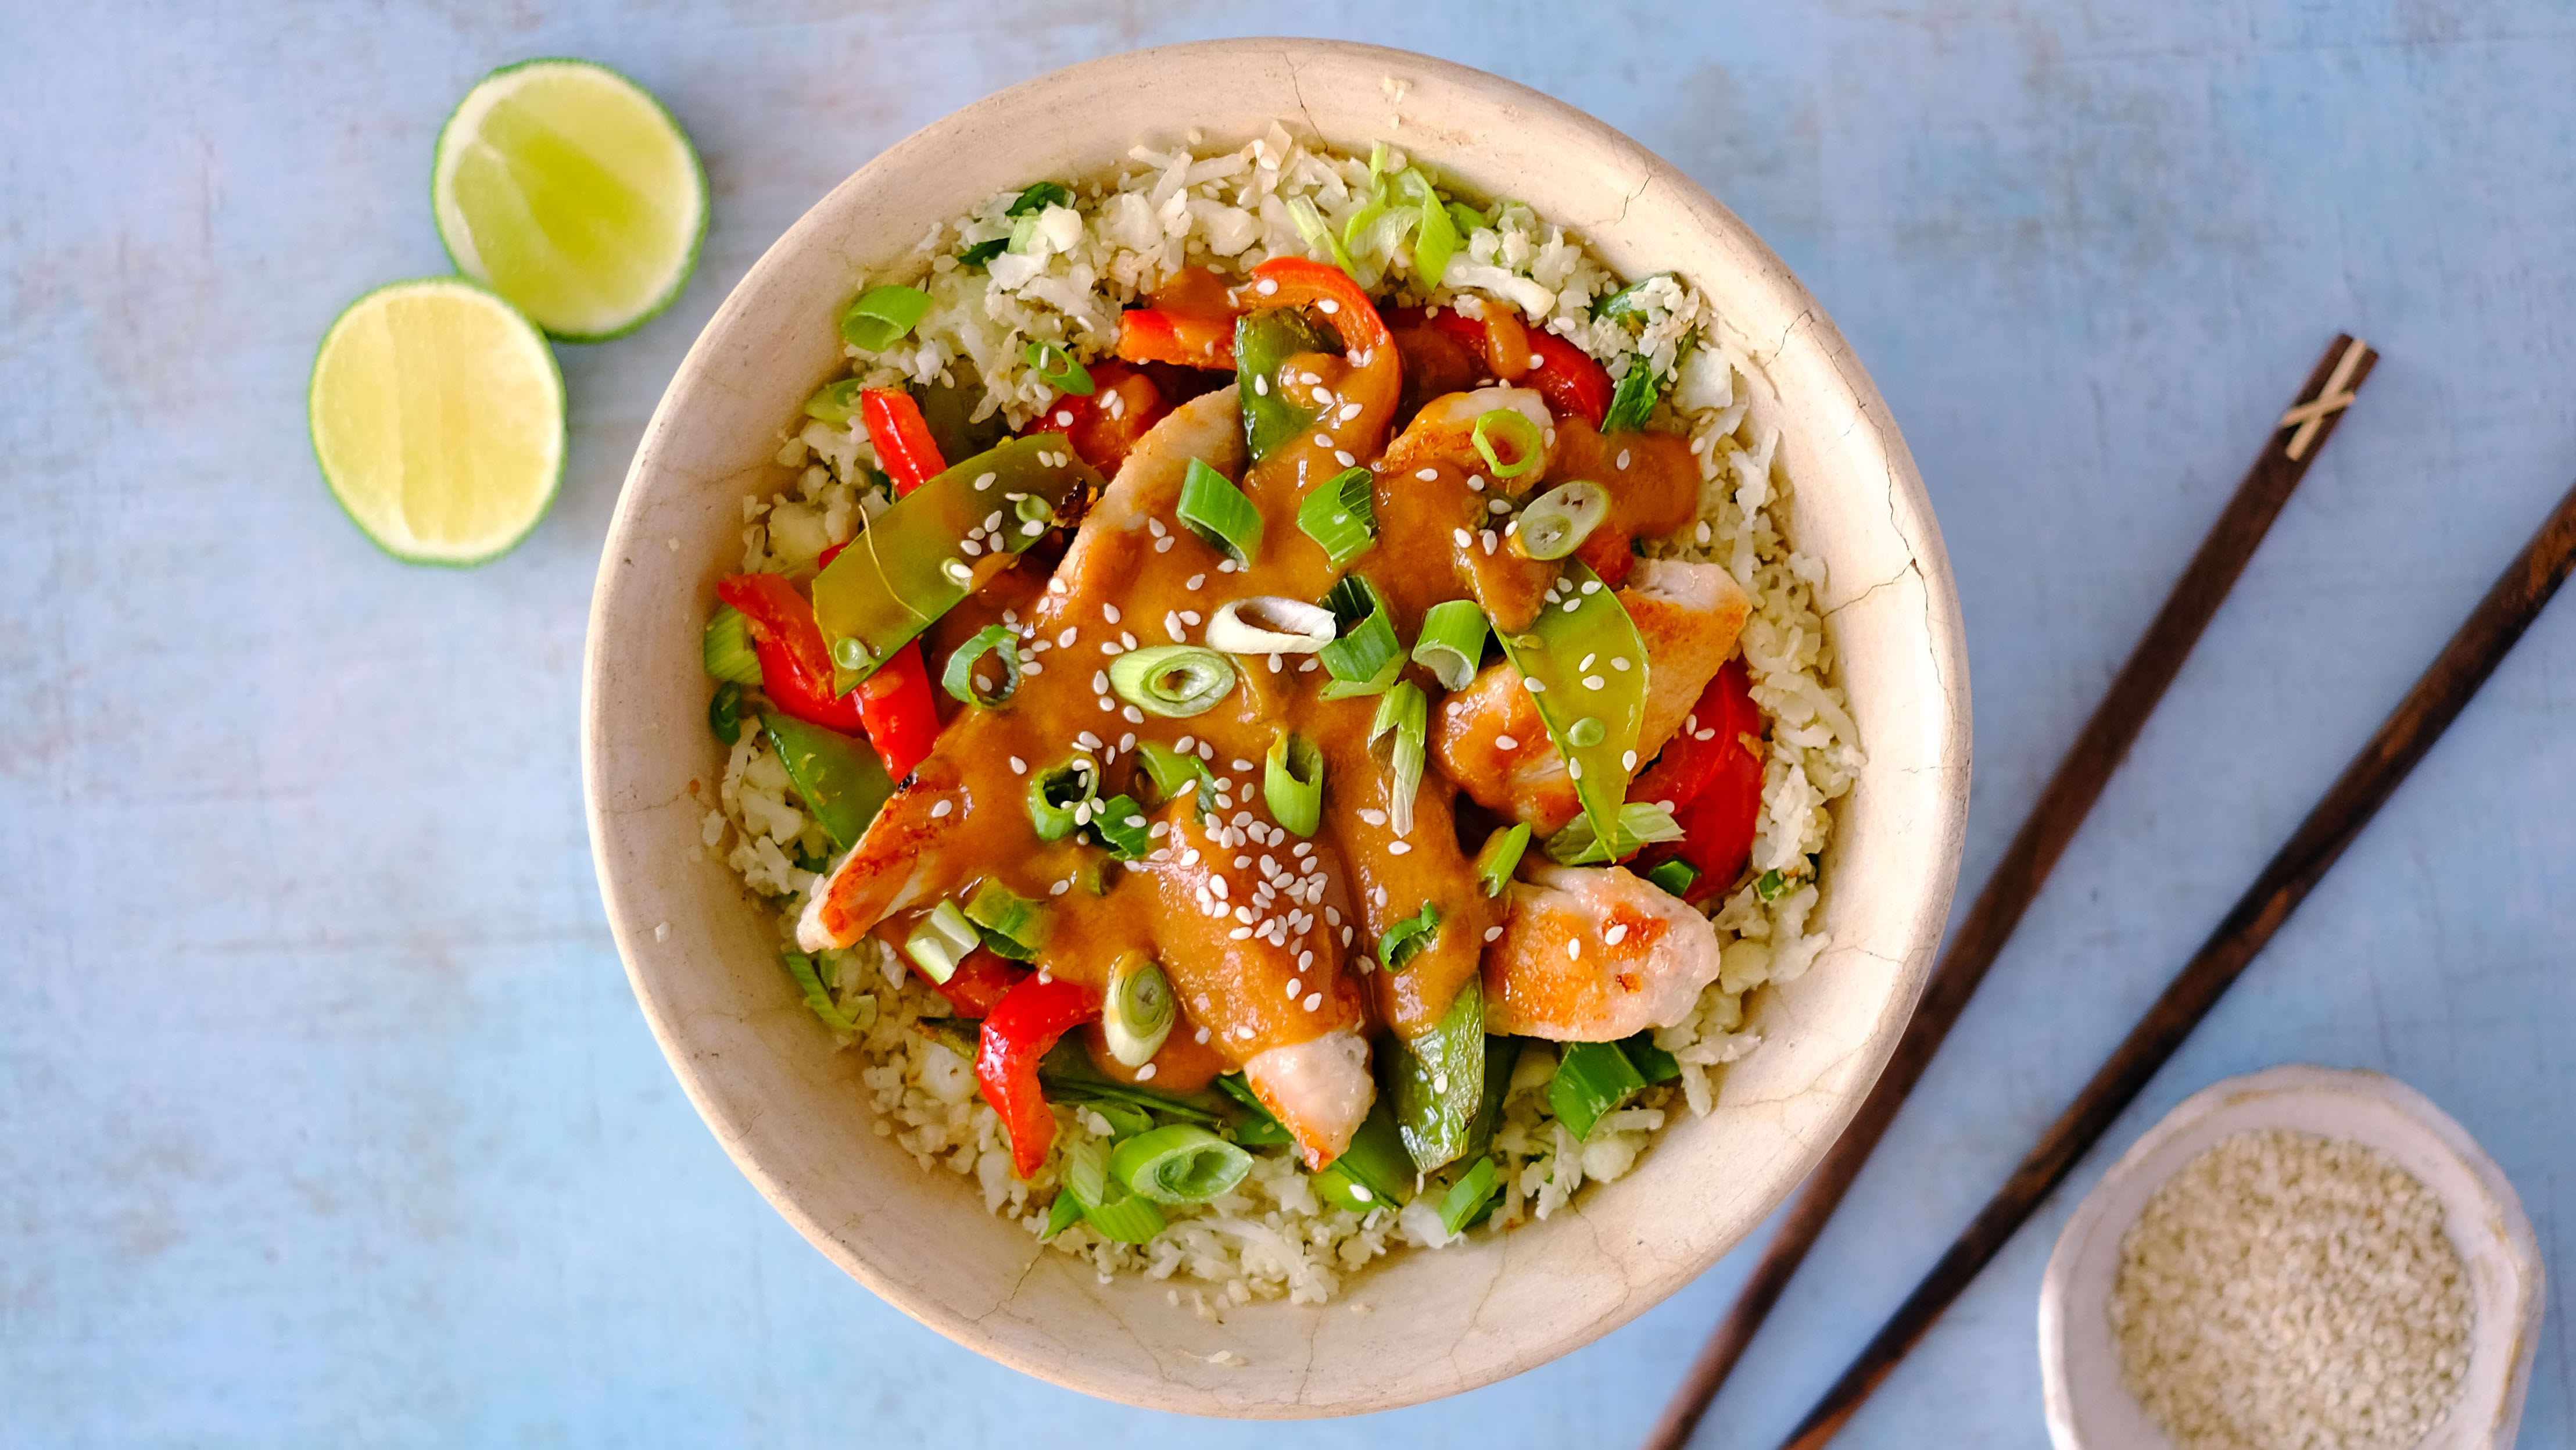 Cauliflower Fried Rice with Chicken and a Zingy Peanut Sauce